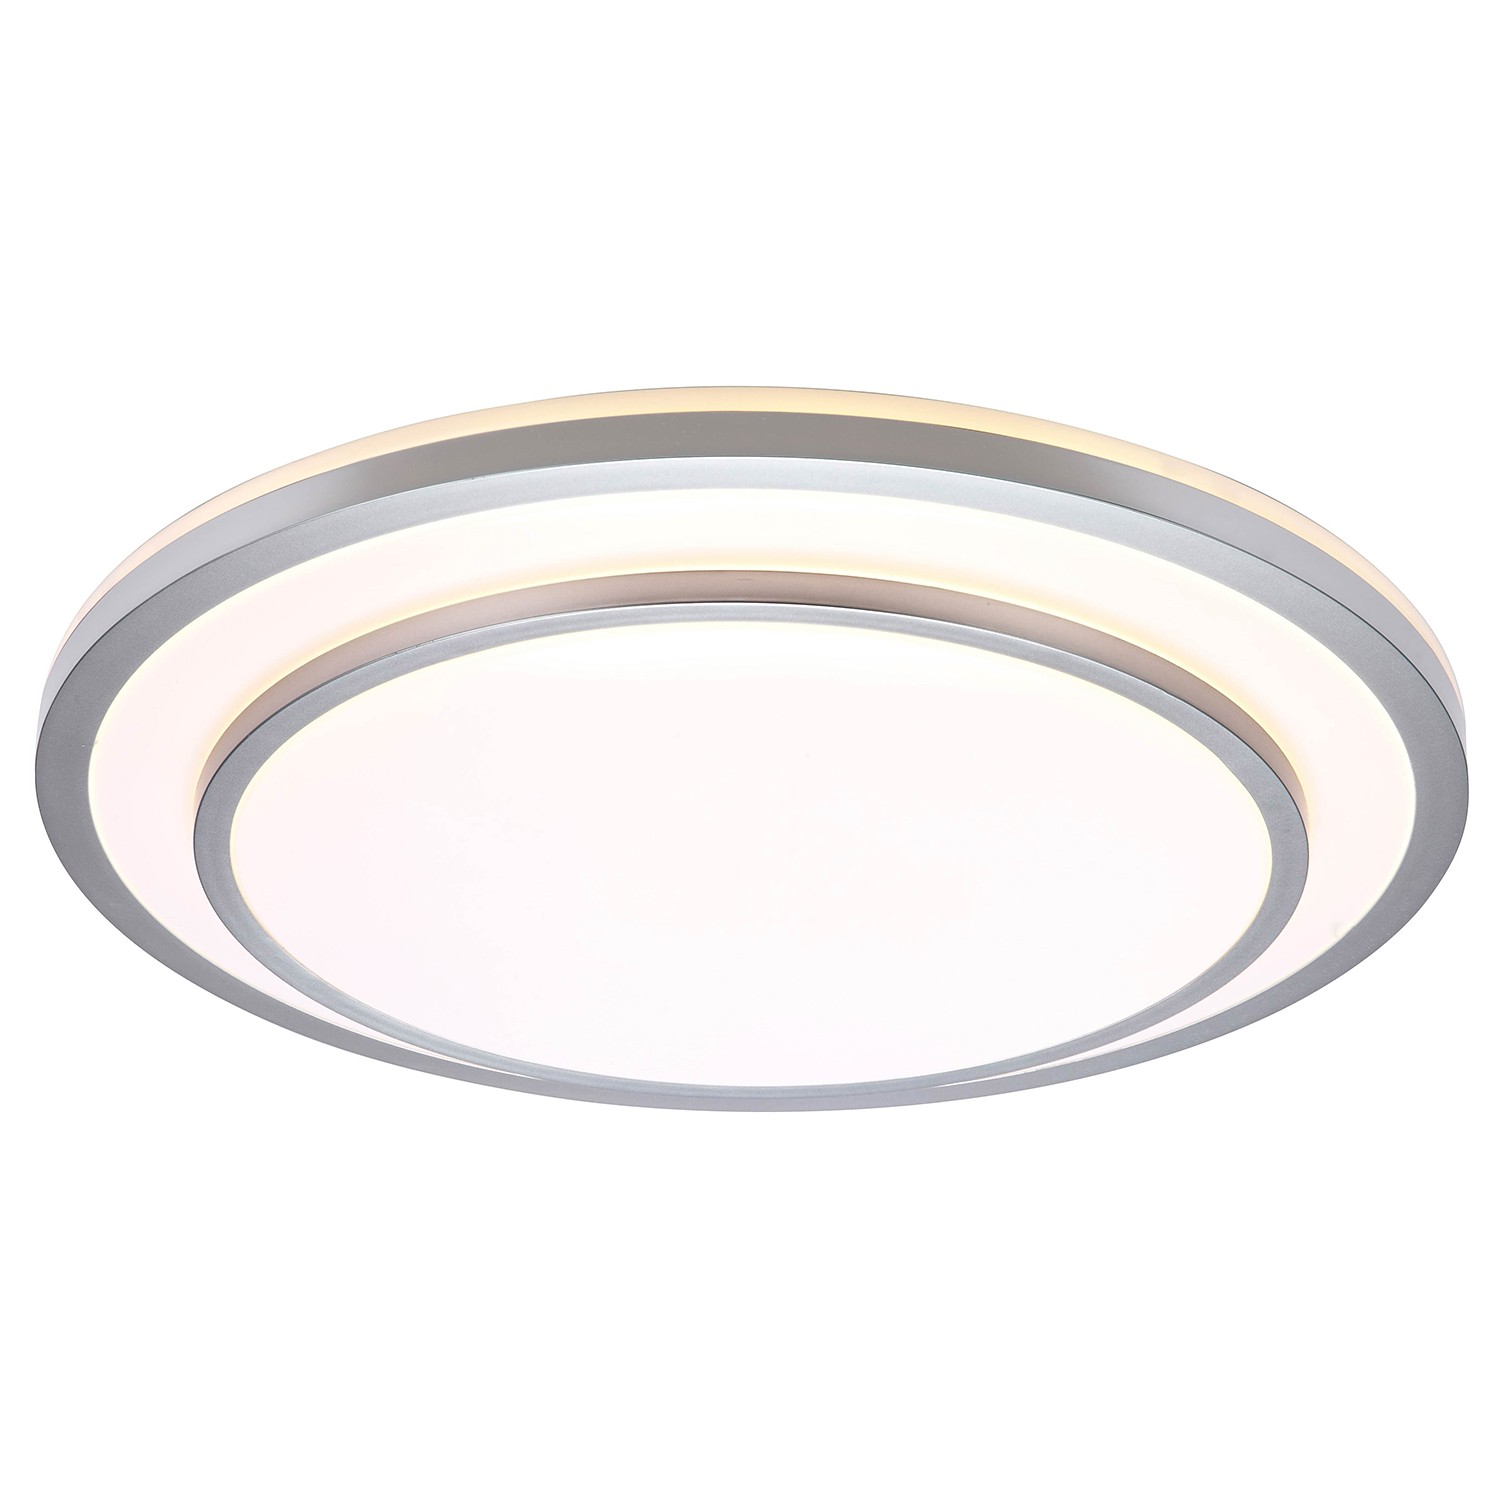 home24 LED-Tischleuchte Luciano